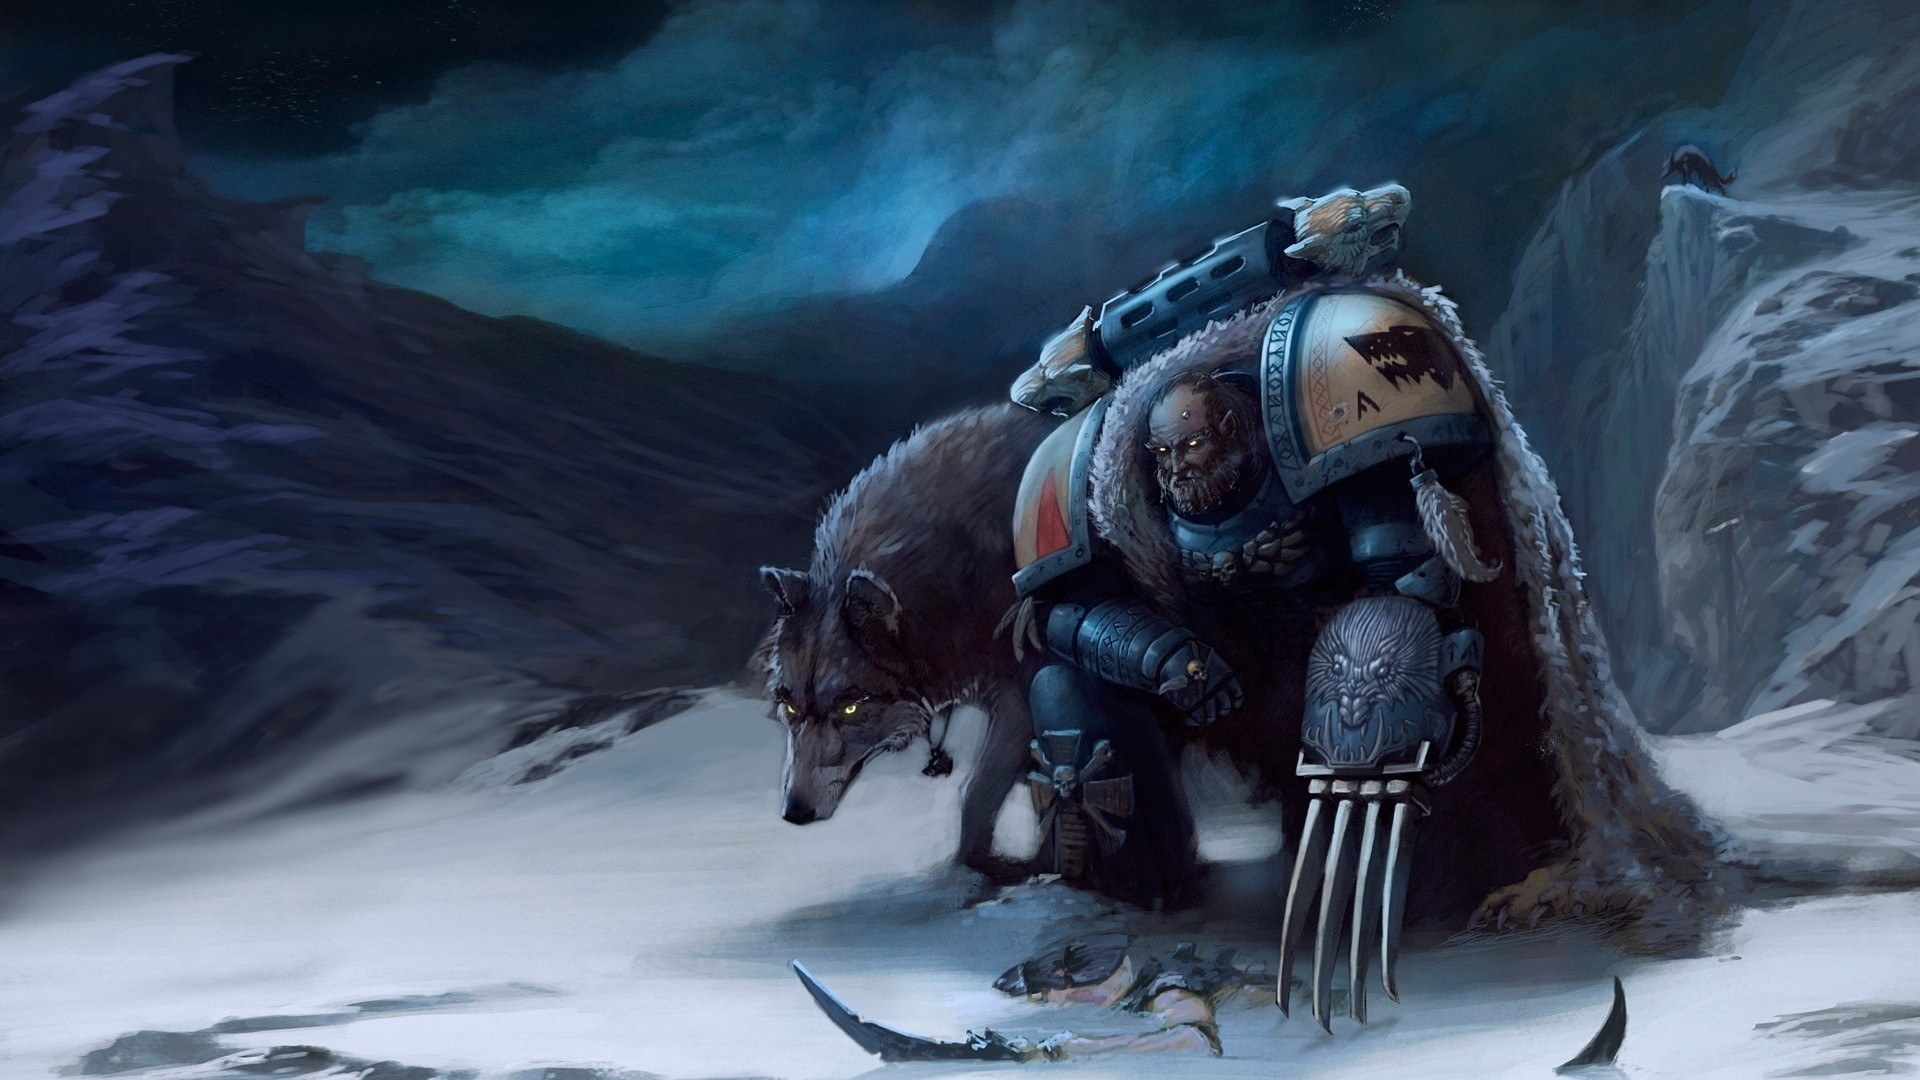 40k Space Marines Wolf Drawing sci fi art warriors weapons wallpaper 1920x1080